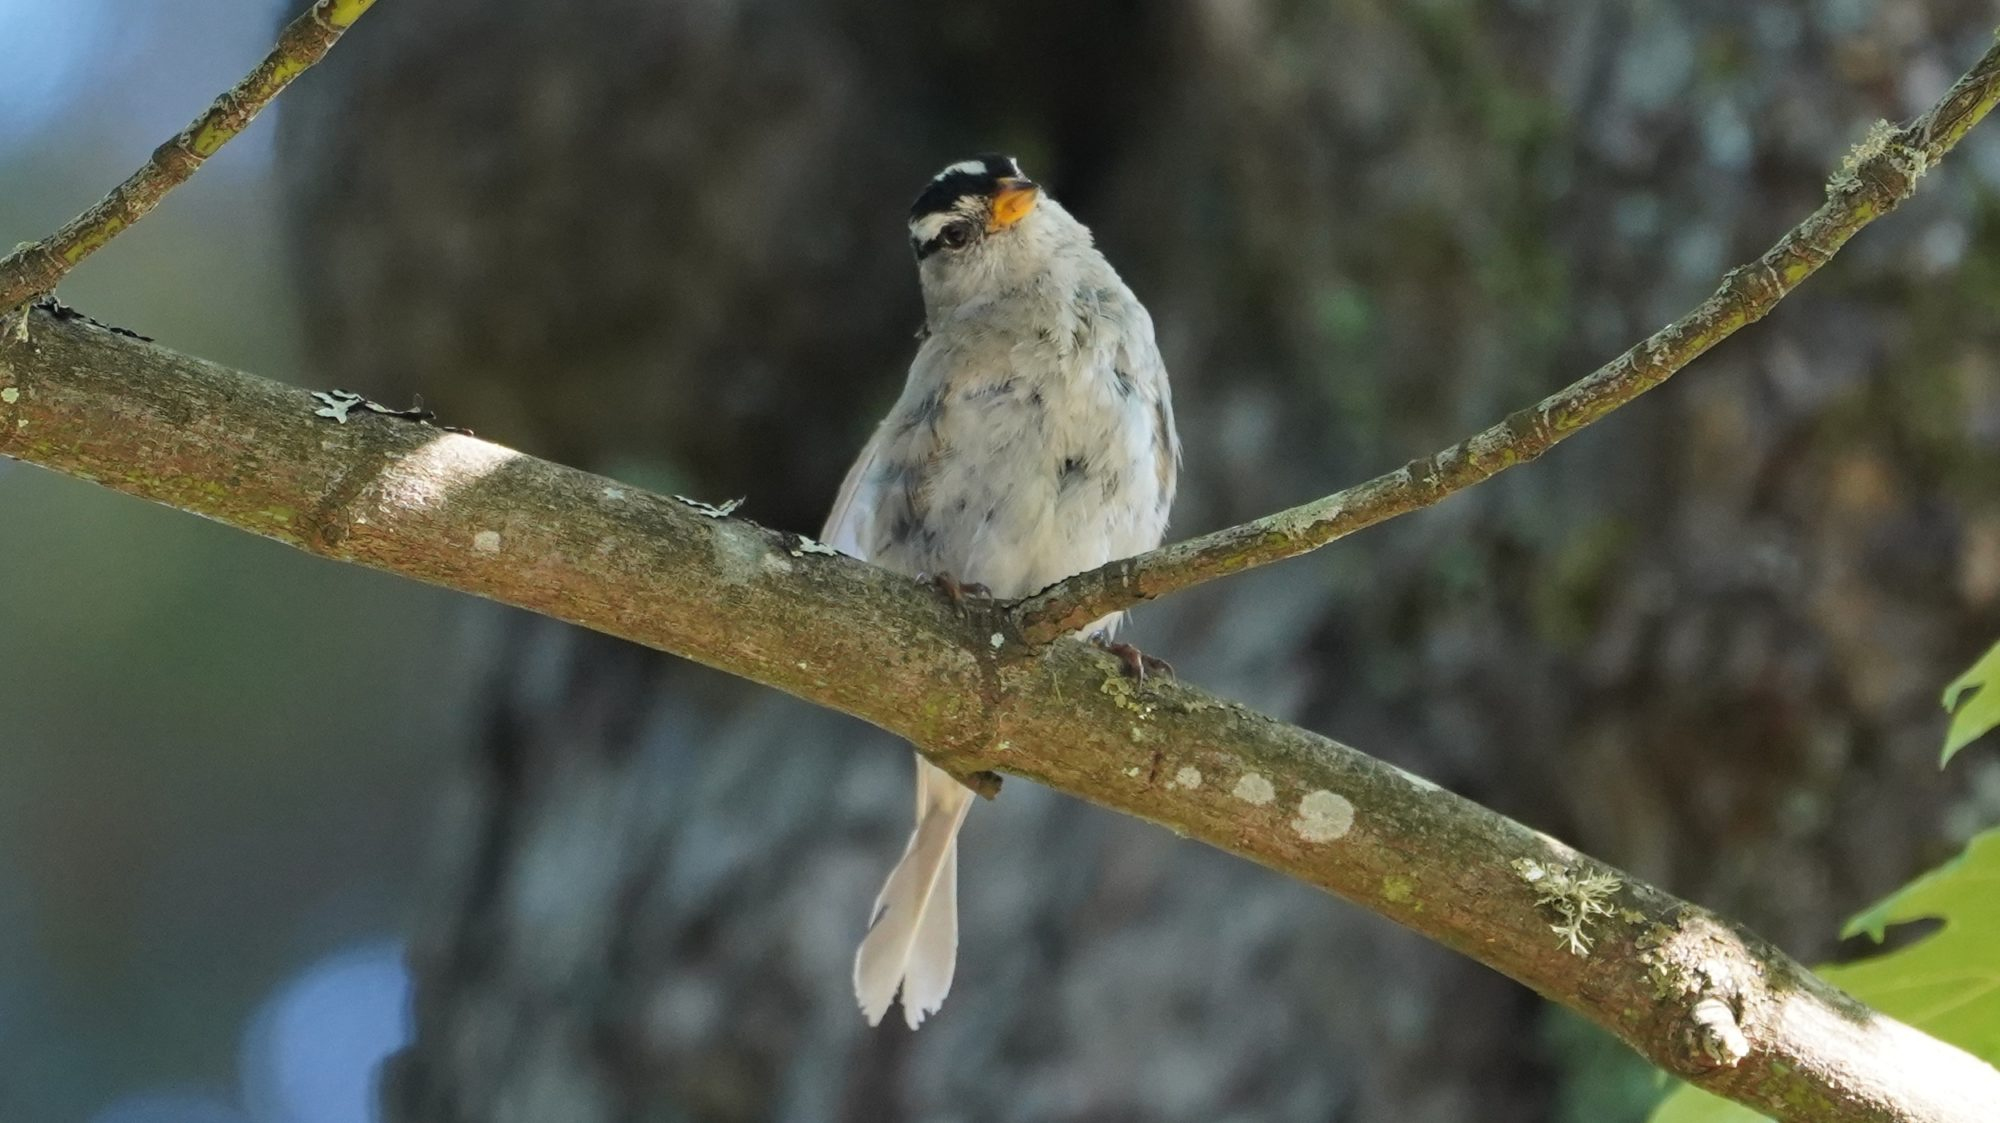 White-crowned sparrow tilting head